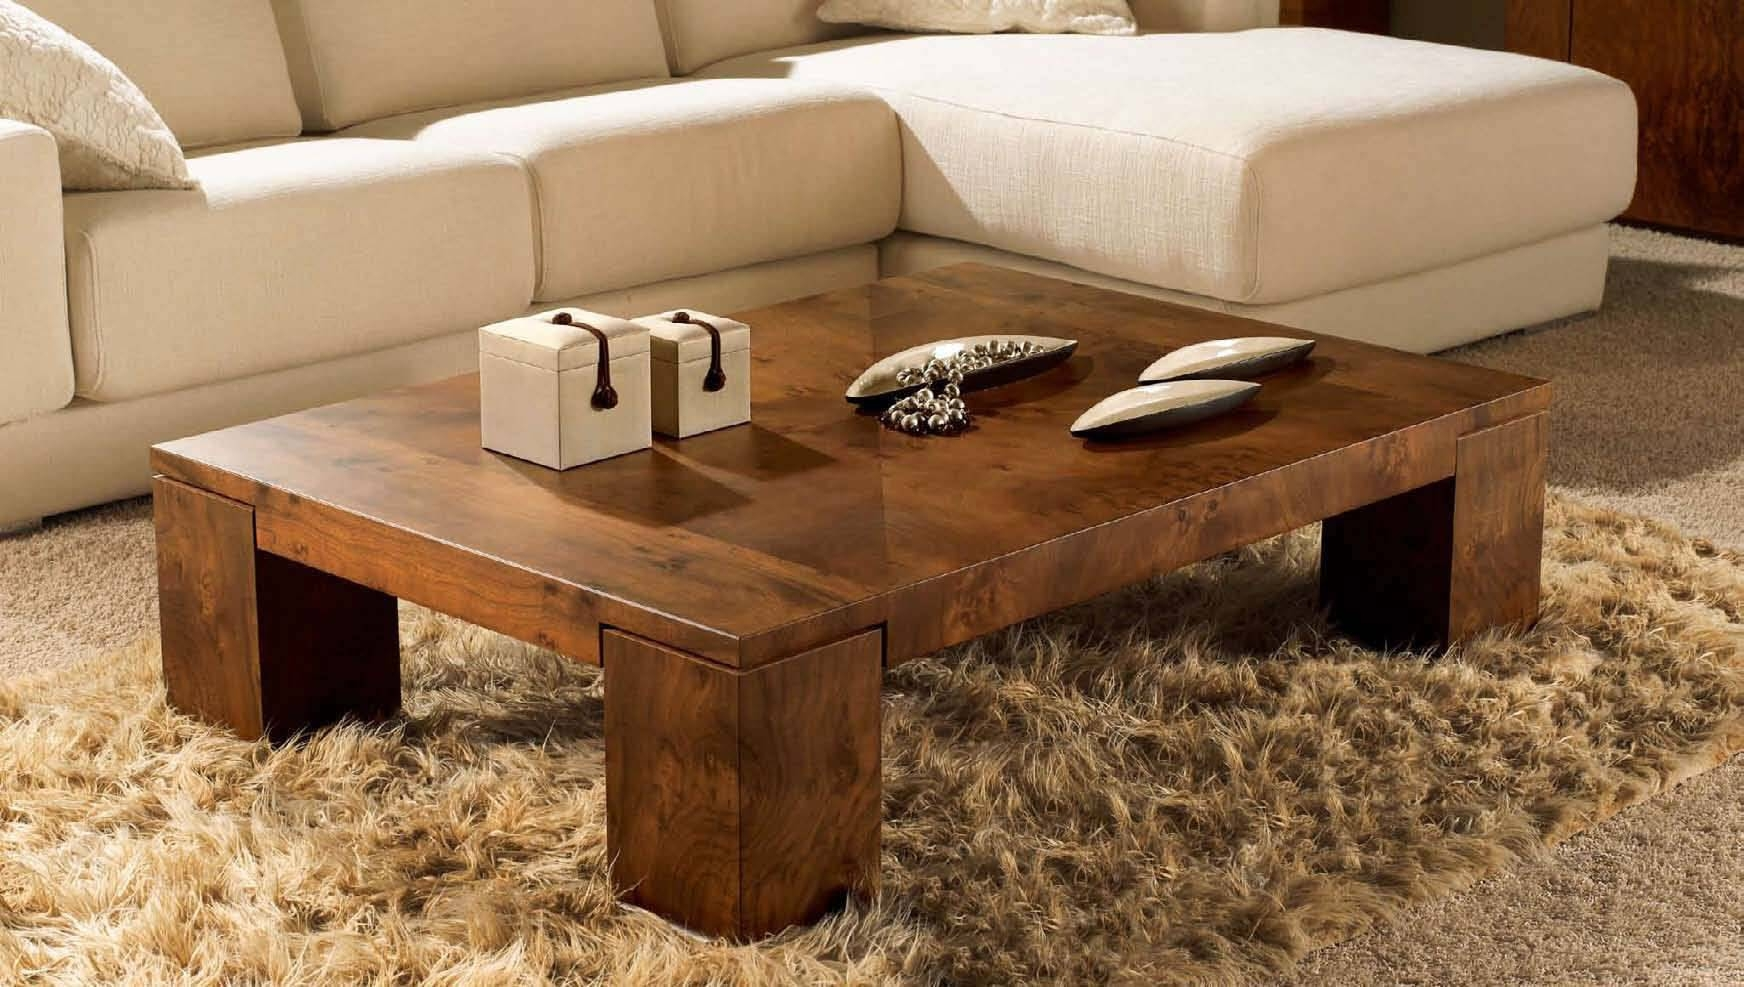 Rustic Square Coffee Table : Rustic Coffee Tables As One Of The with Low Square Coffee Tables (Image 29 of 30)